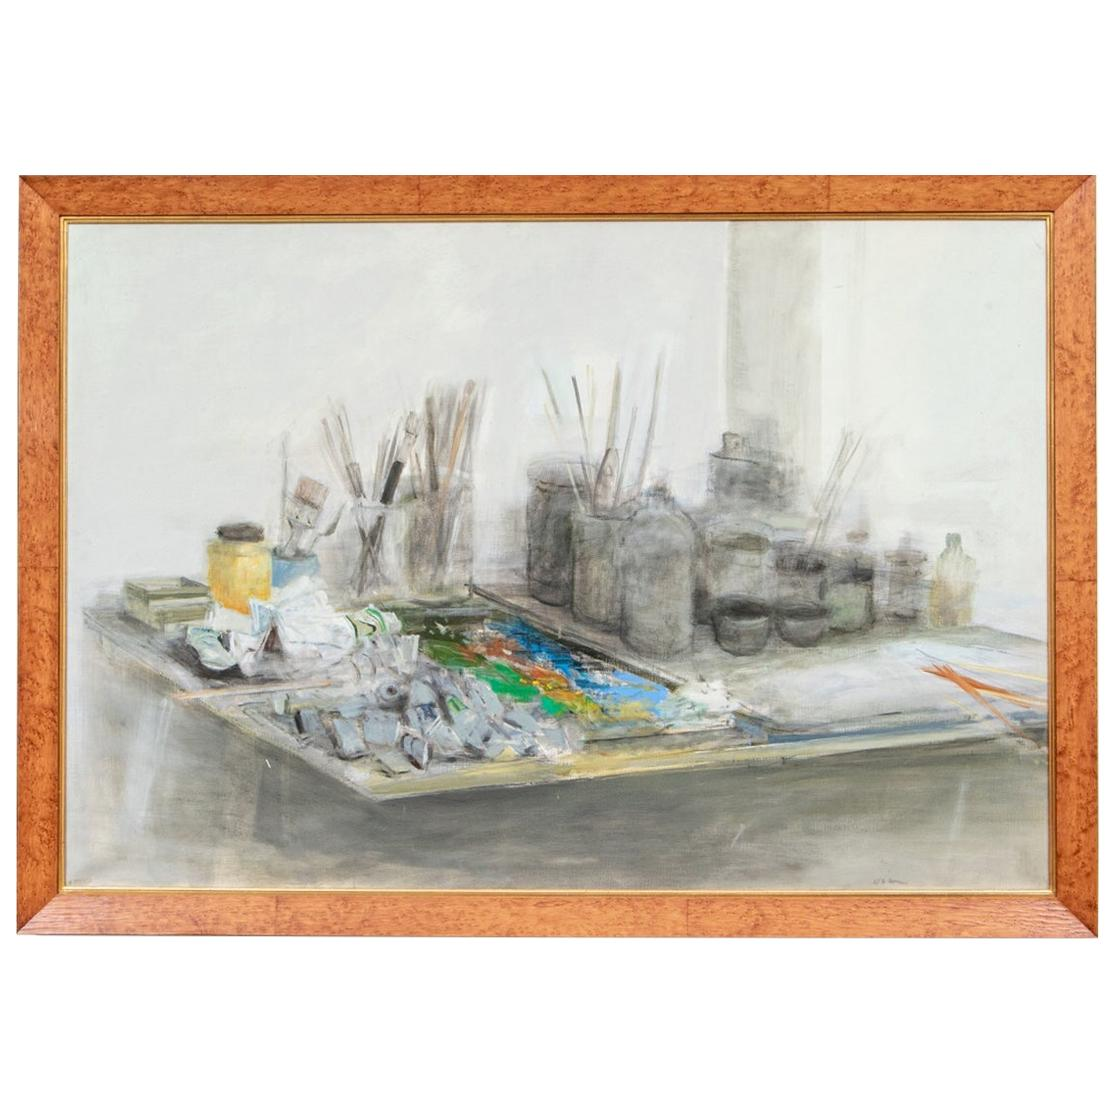 Ferit Iscan Oil on Canvas, Still Life with Painting Supplies